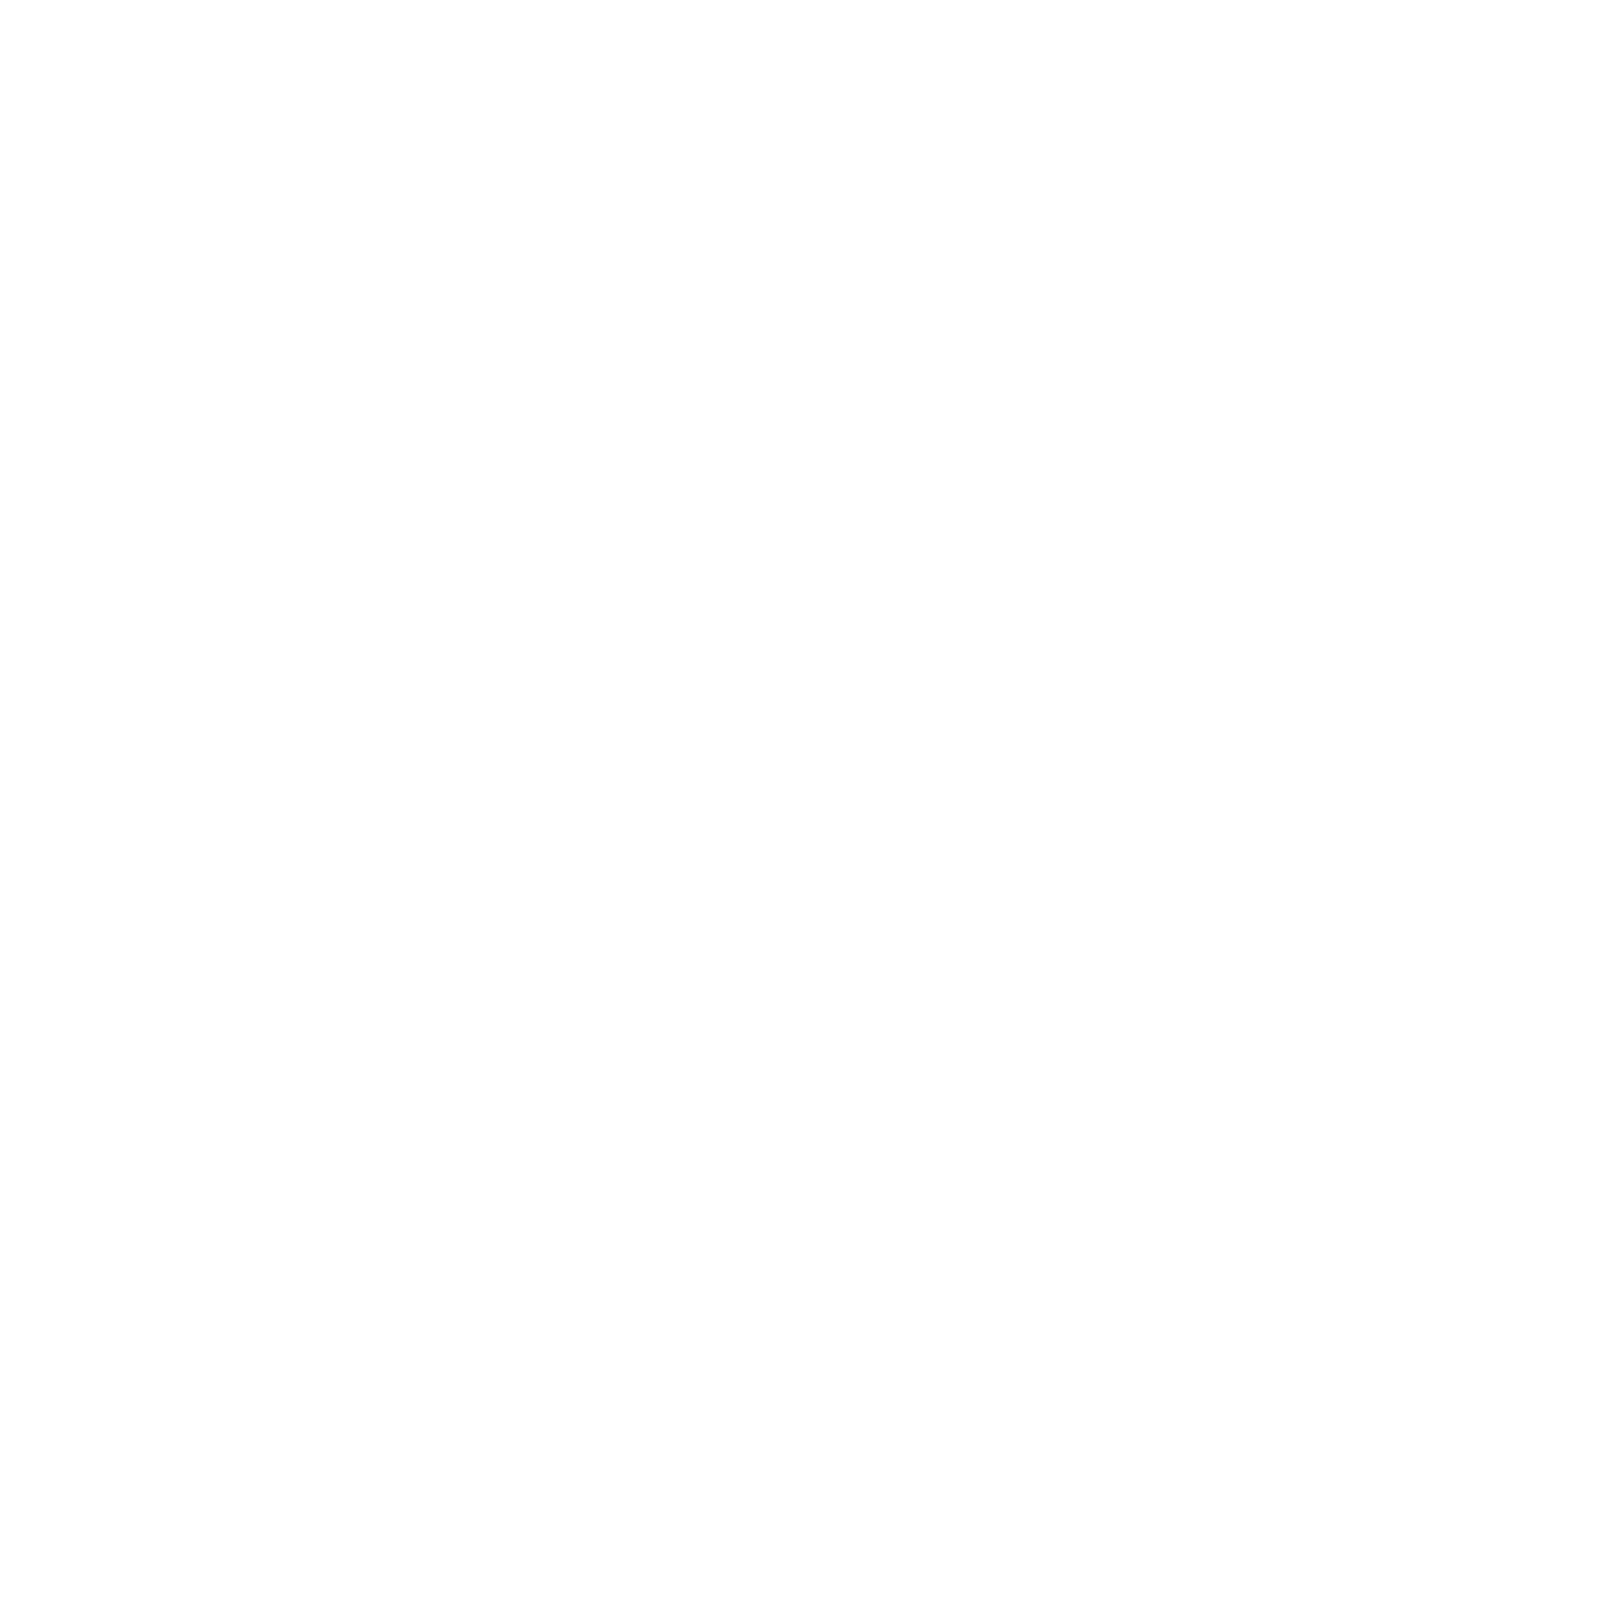 ncc-project-logo